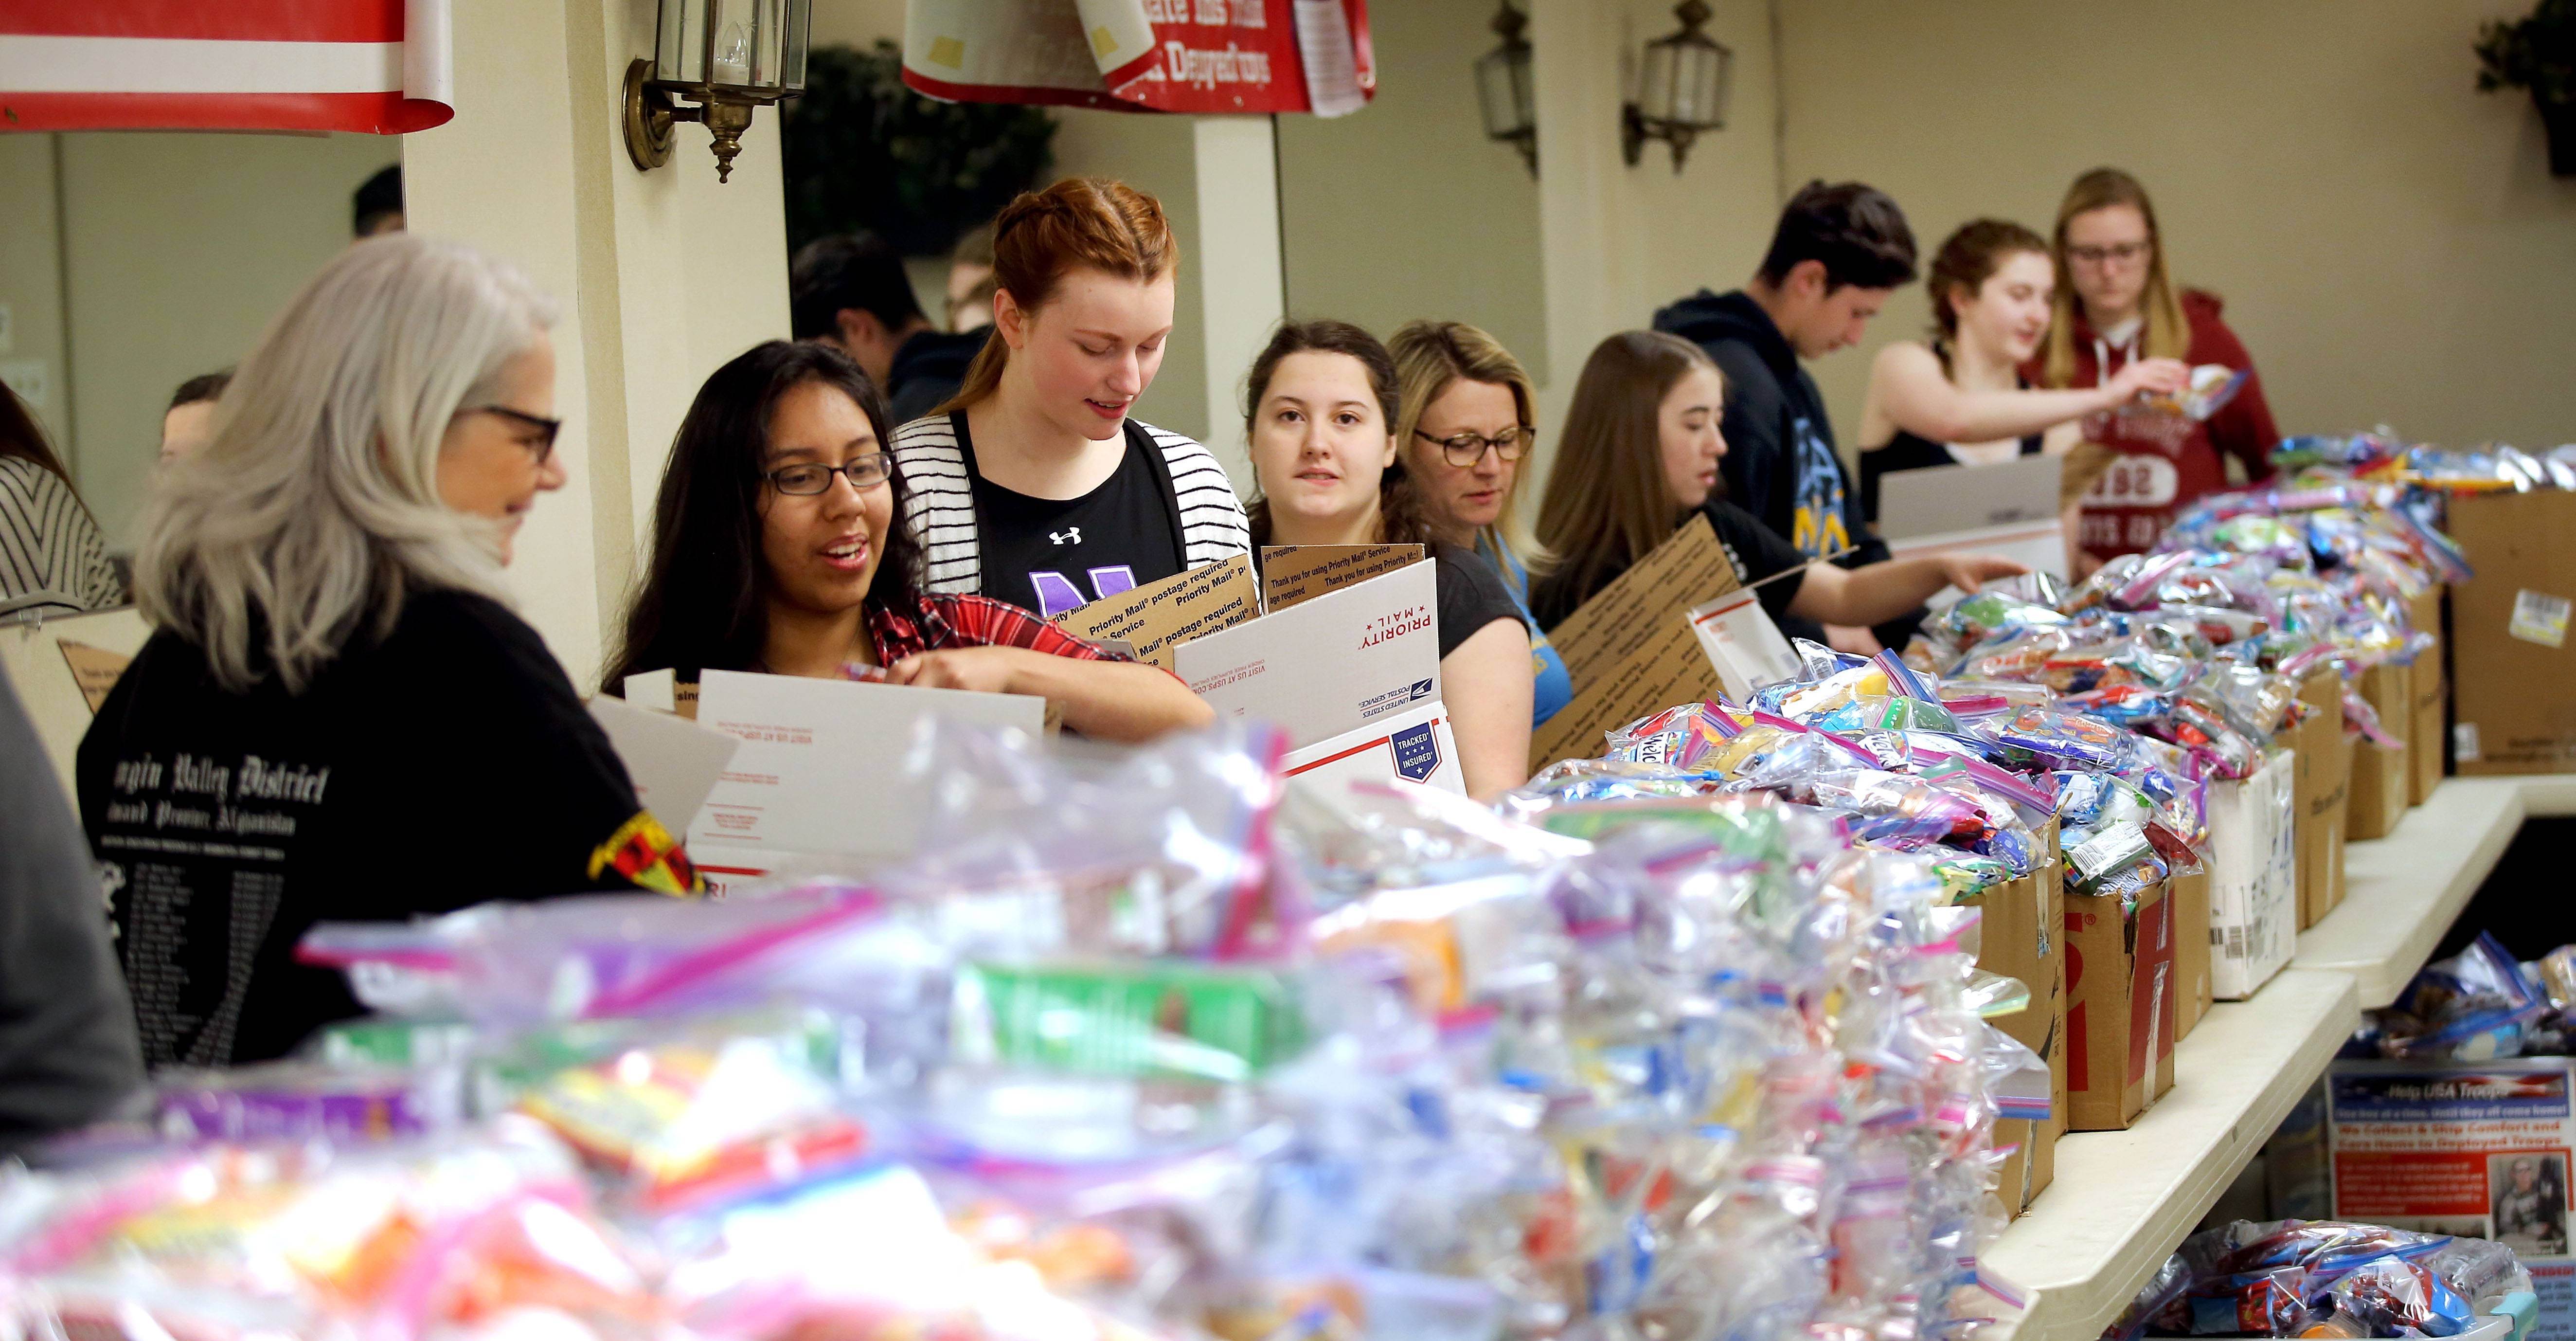 Volunteers line up to fill boxes Sunday as Help USA Troops held a shipping party at AMVETS Post 66 in Wheeling. The goal of the day was to ship 700 or more boxes containing comfort and care items to deployed troops.